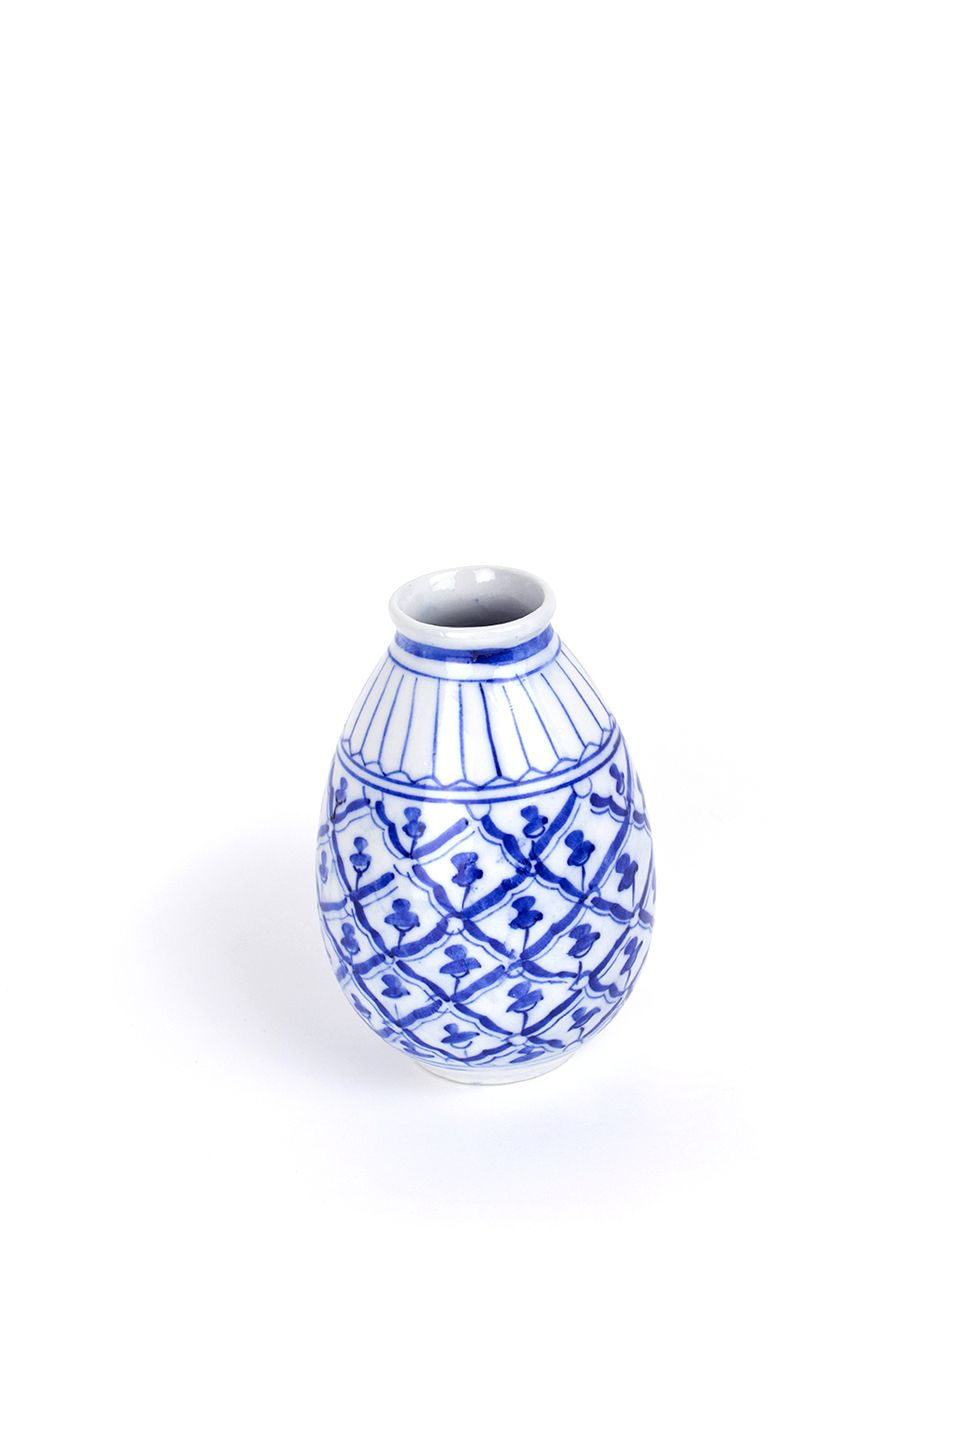 Second Hand White And Blue Vase Blue Vase Small Gifts Vase